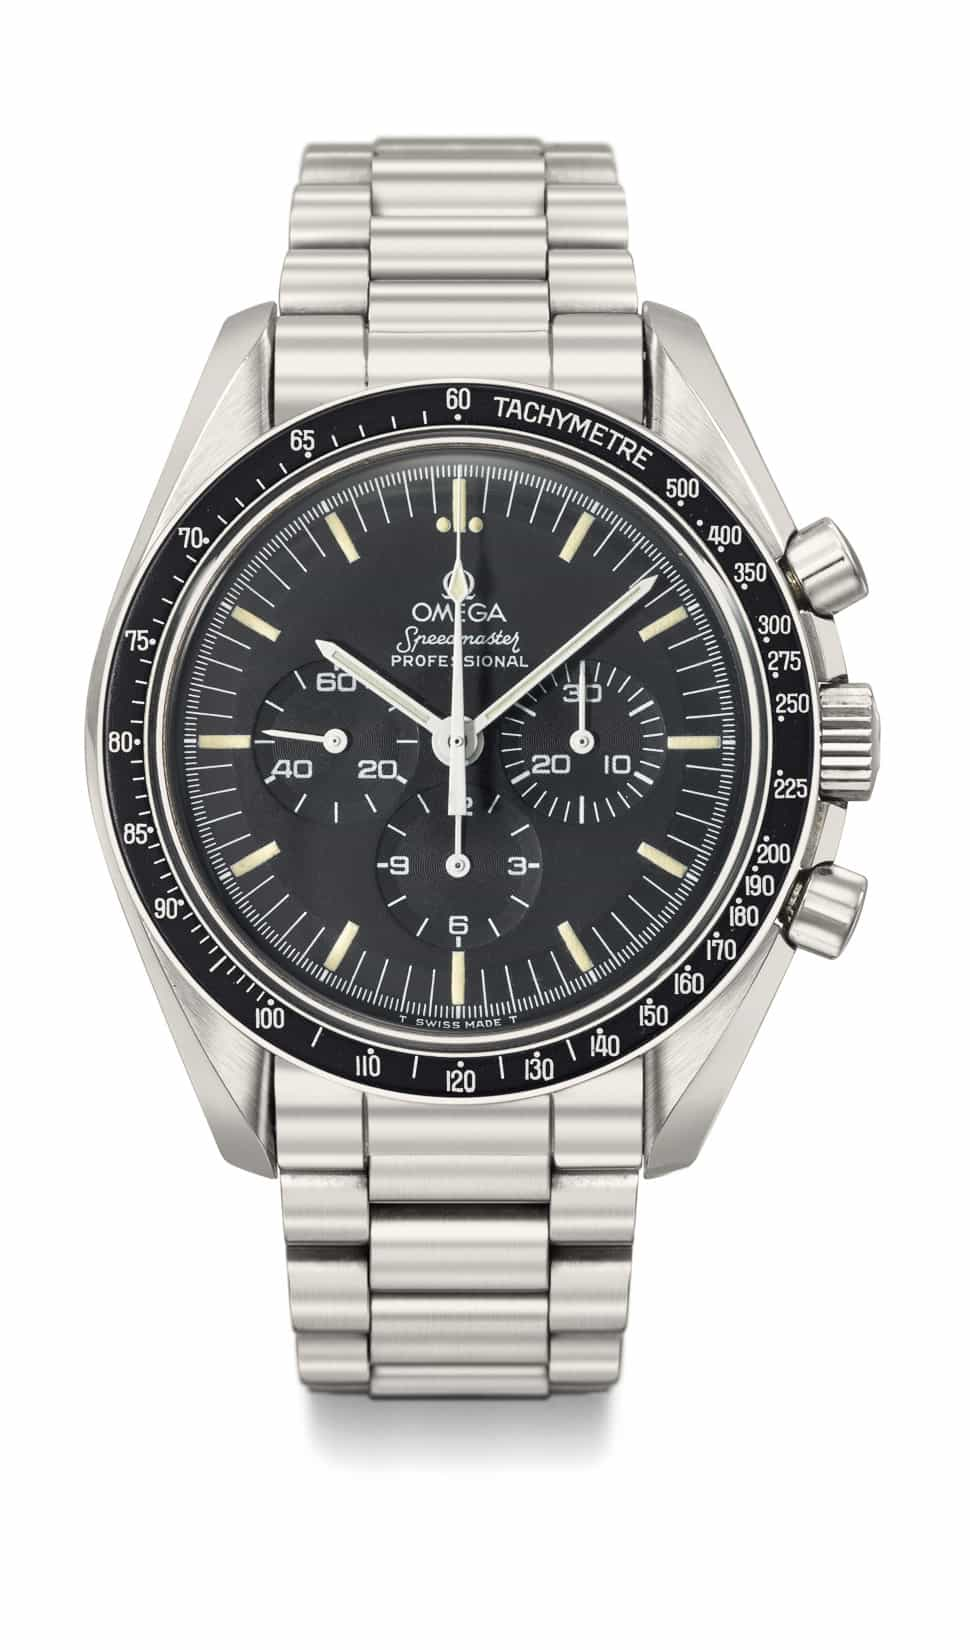 Omega Speedmaster Professional Reference 345.0808